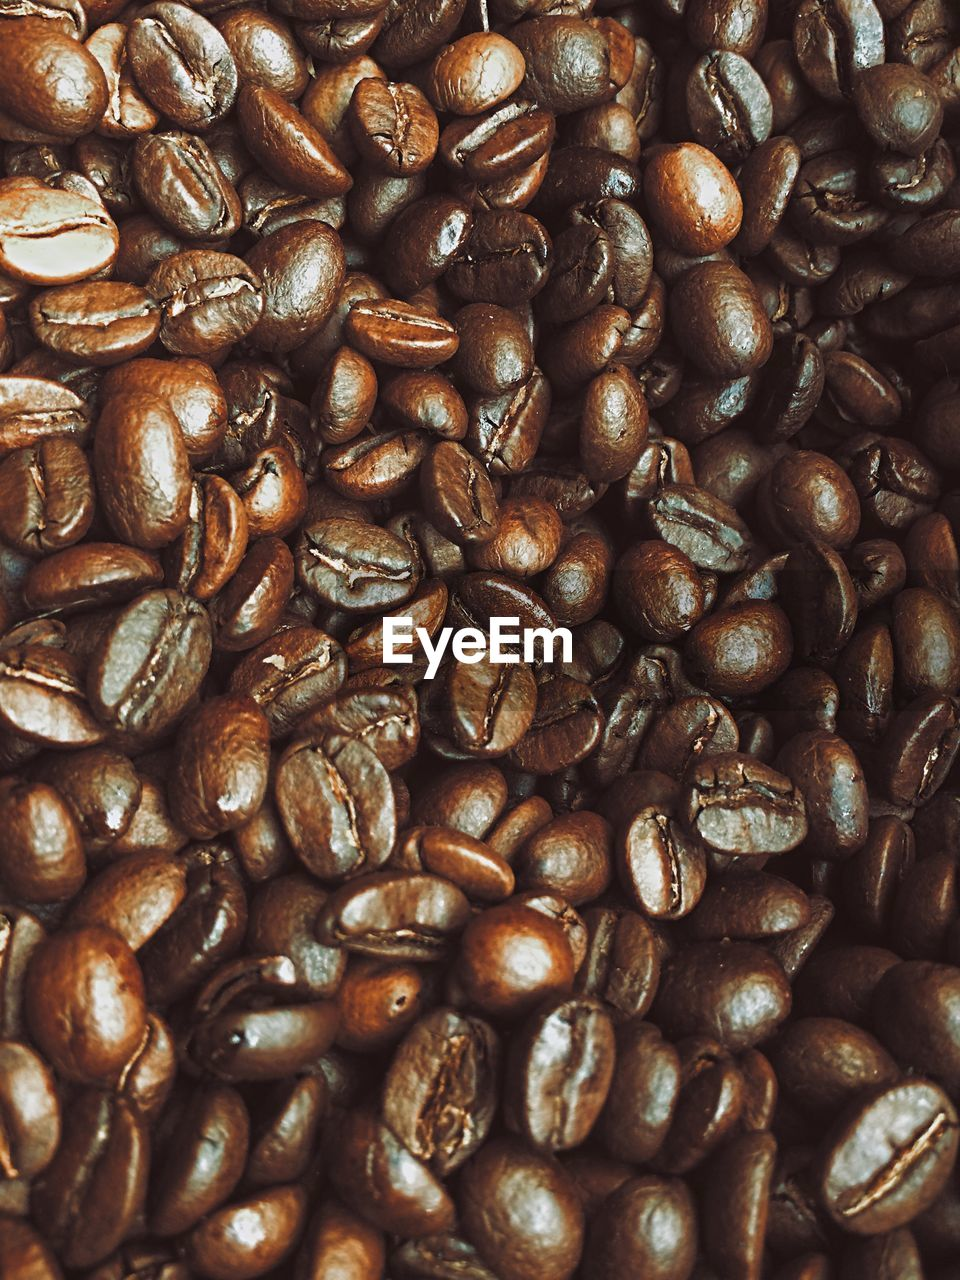 coffee - drink, coffee, food and drink, roasted coffee bean, backgrounds, full frame, food, freshness, large group of objects, brown, no people, still life, abundance, indoors, close-up, caffeine, coffee bean, pattern, high angle view, drink